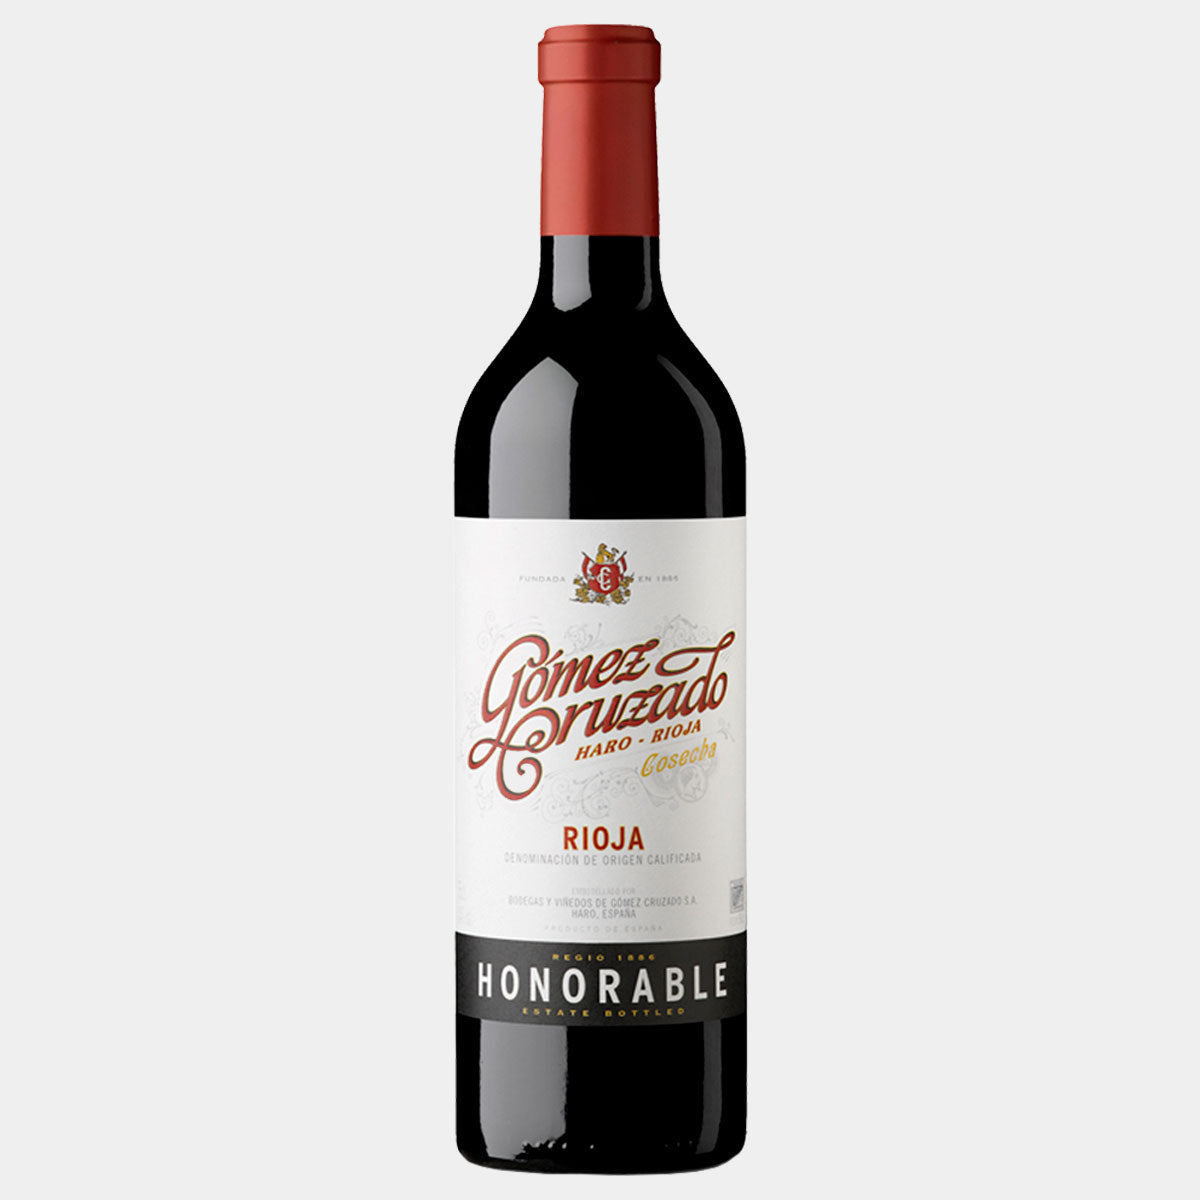 Gomez Cruzado Regio 1886 Honorable 2015 - Wines and Copas Barcelona